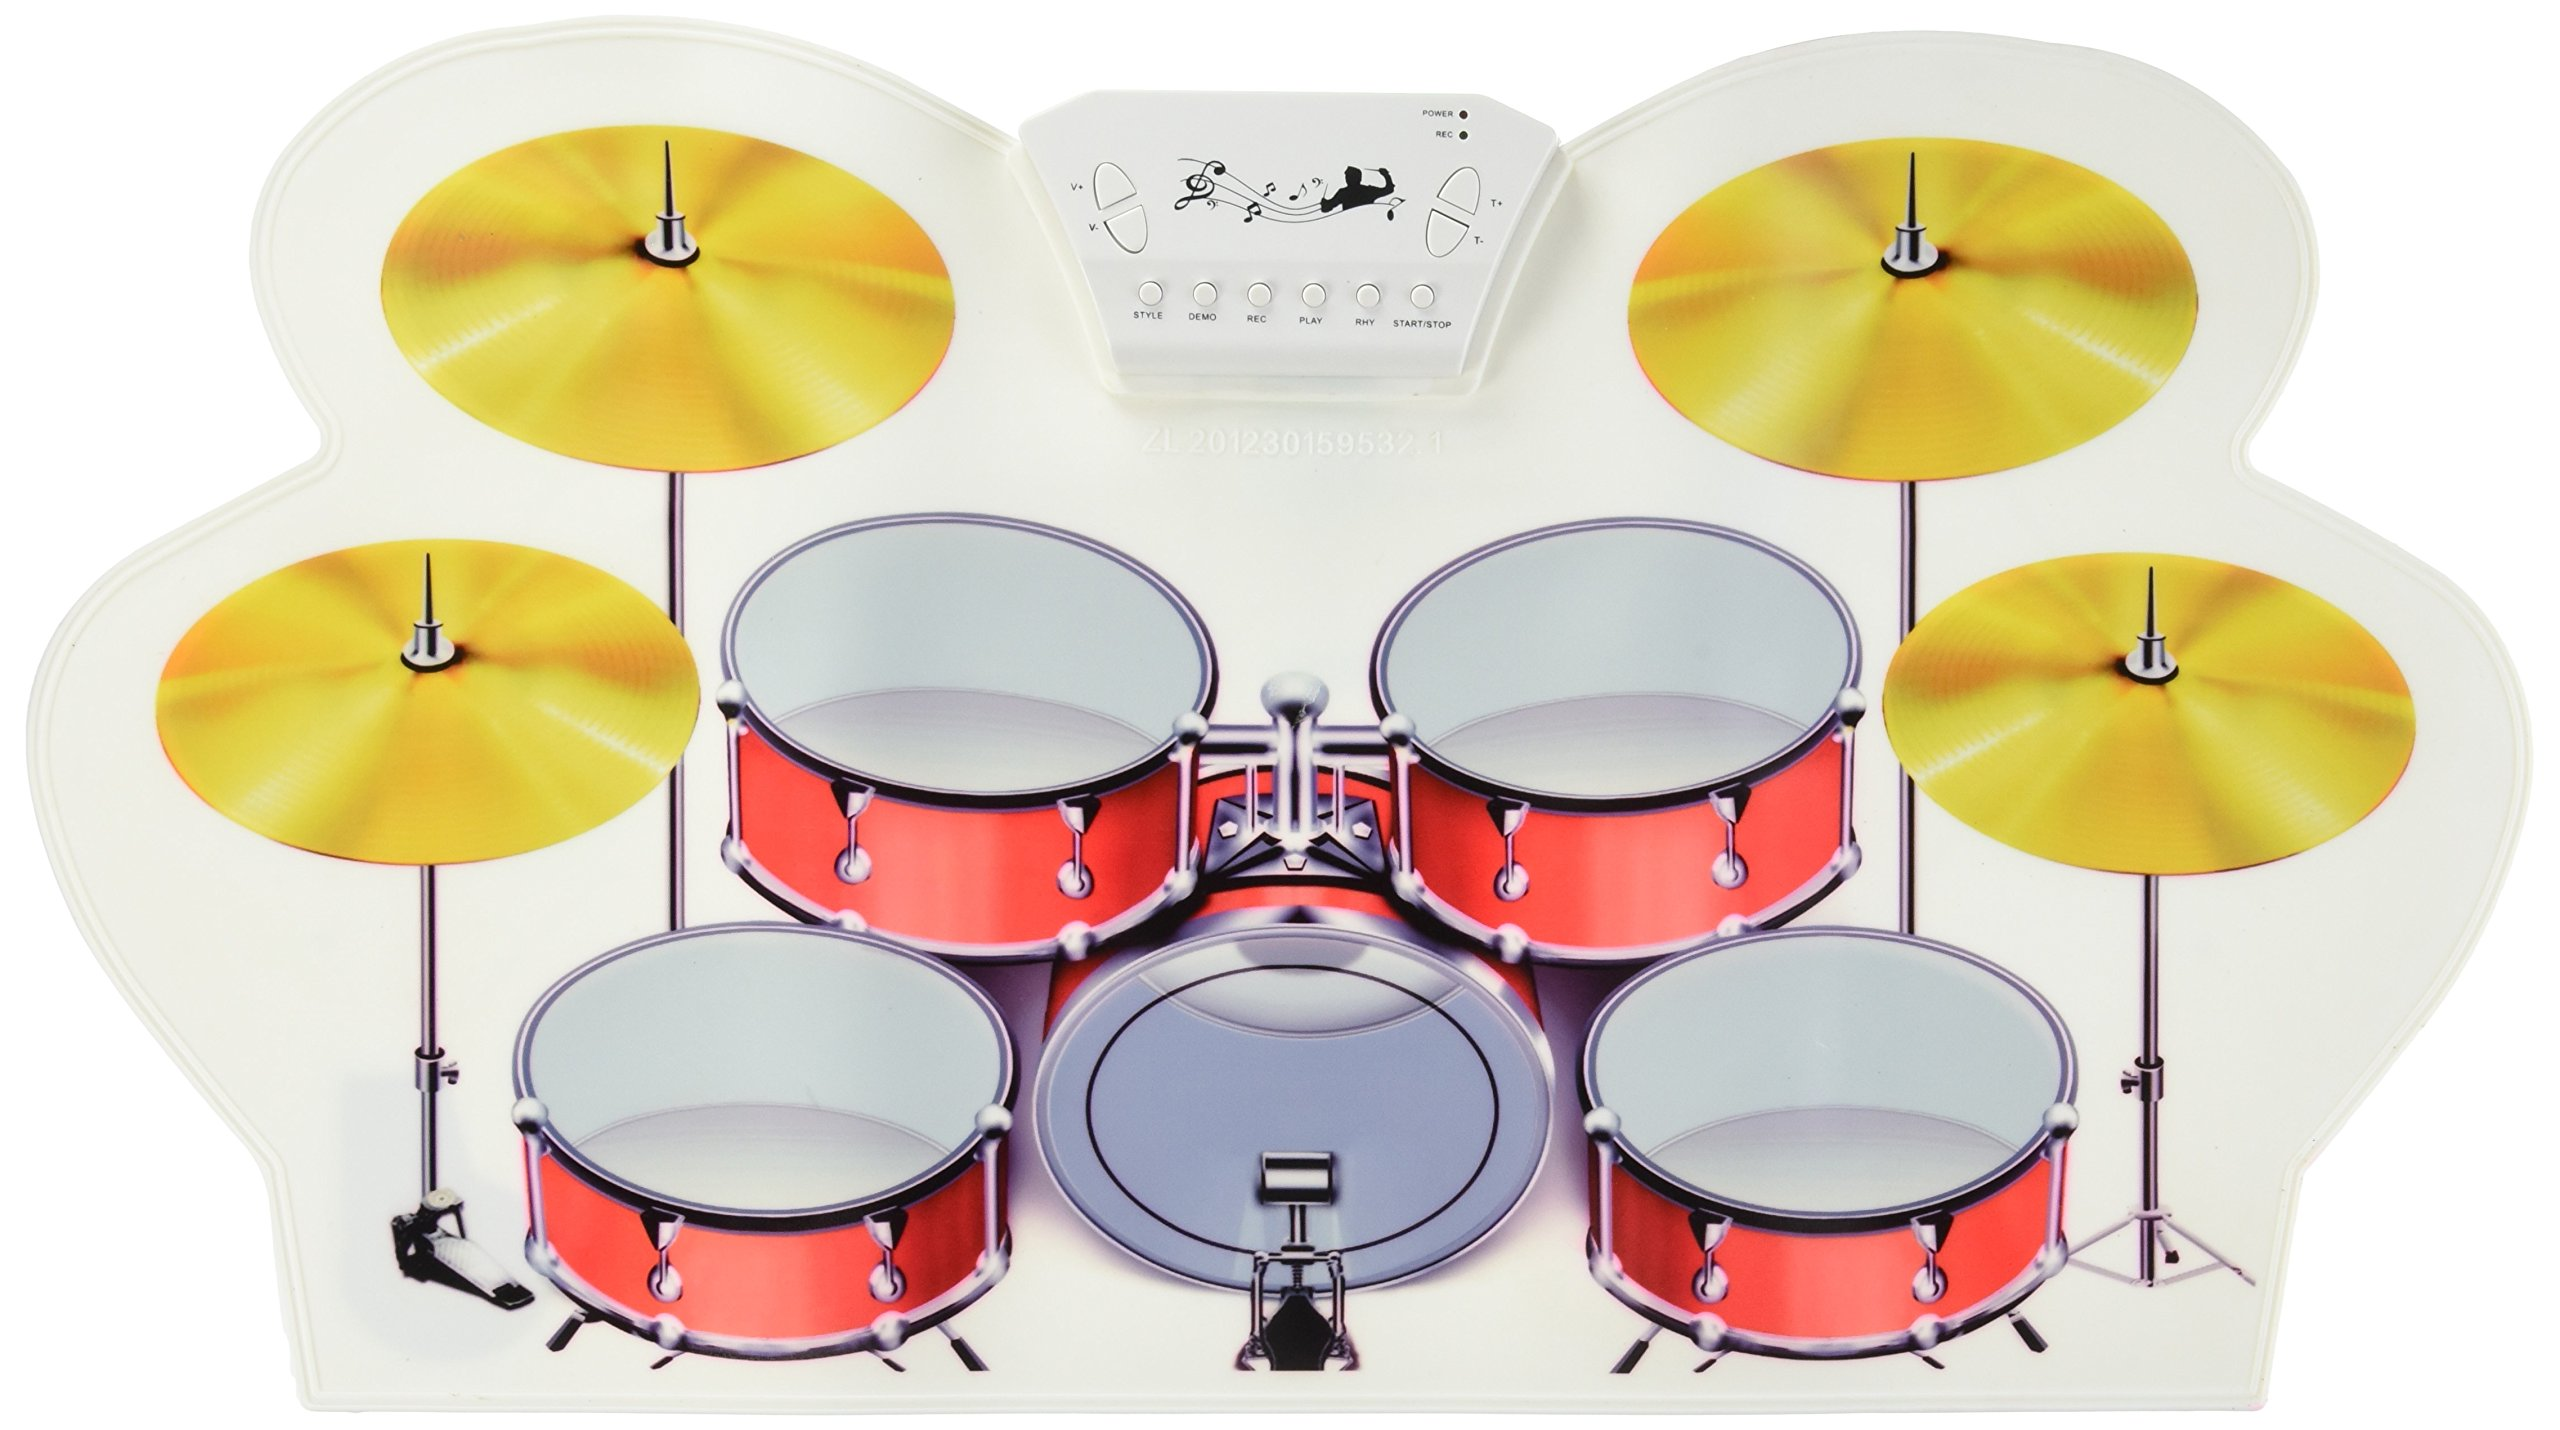 Rockland MD10081 Portable USB MIDI Electronic Drum Kit with software